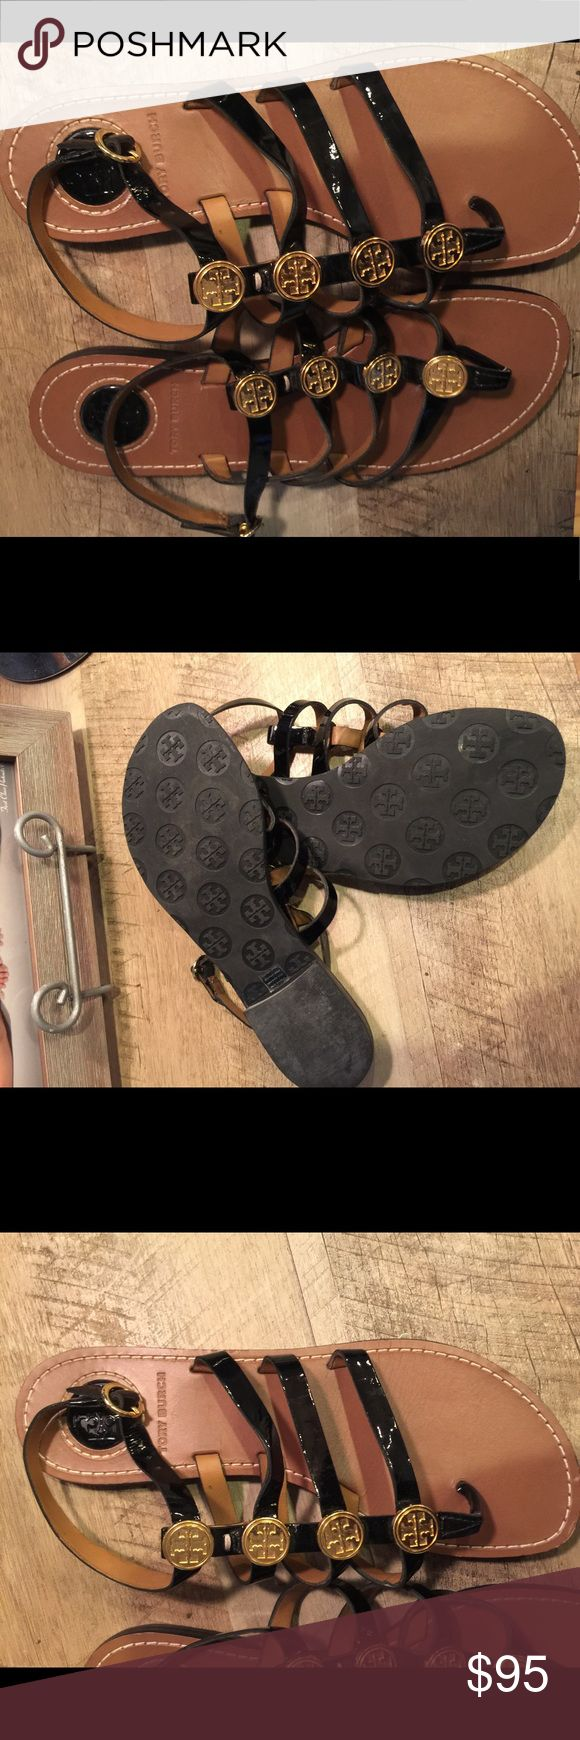 Tory Burch new black shoes New few minor scrapes on bottom never worn. Tory Burch Shoes Sandals